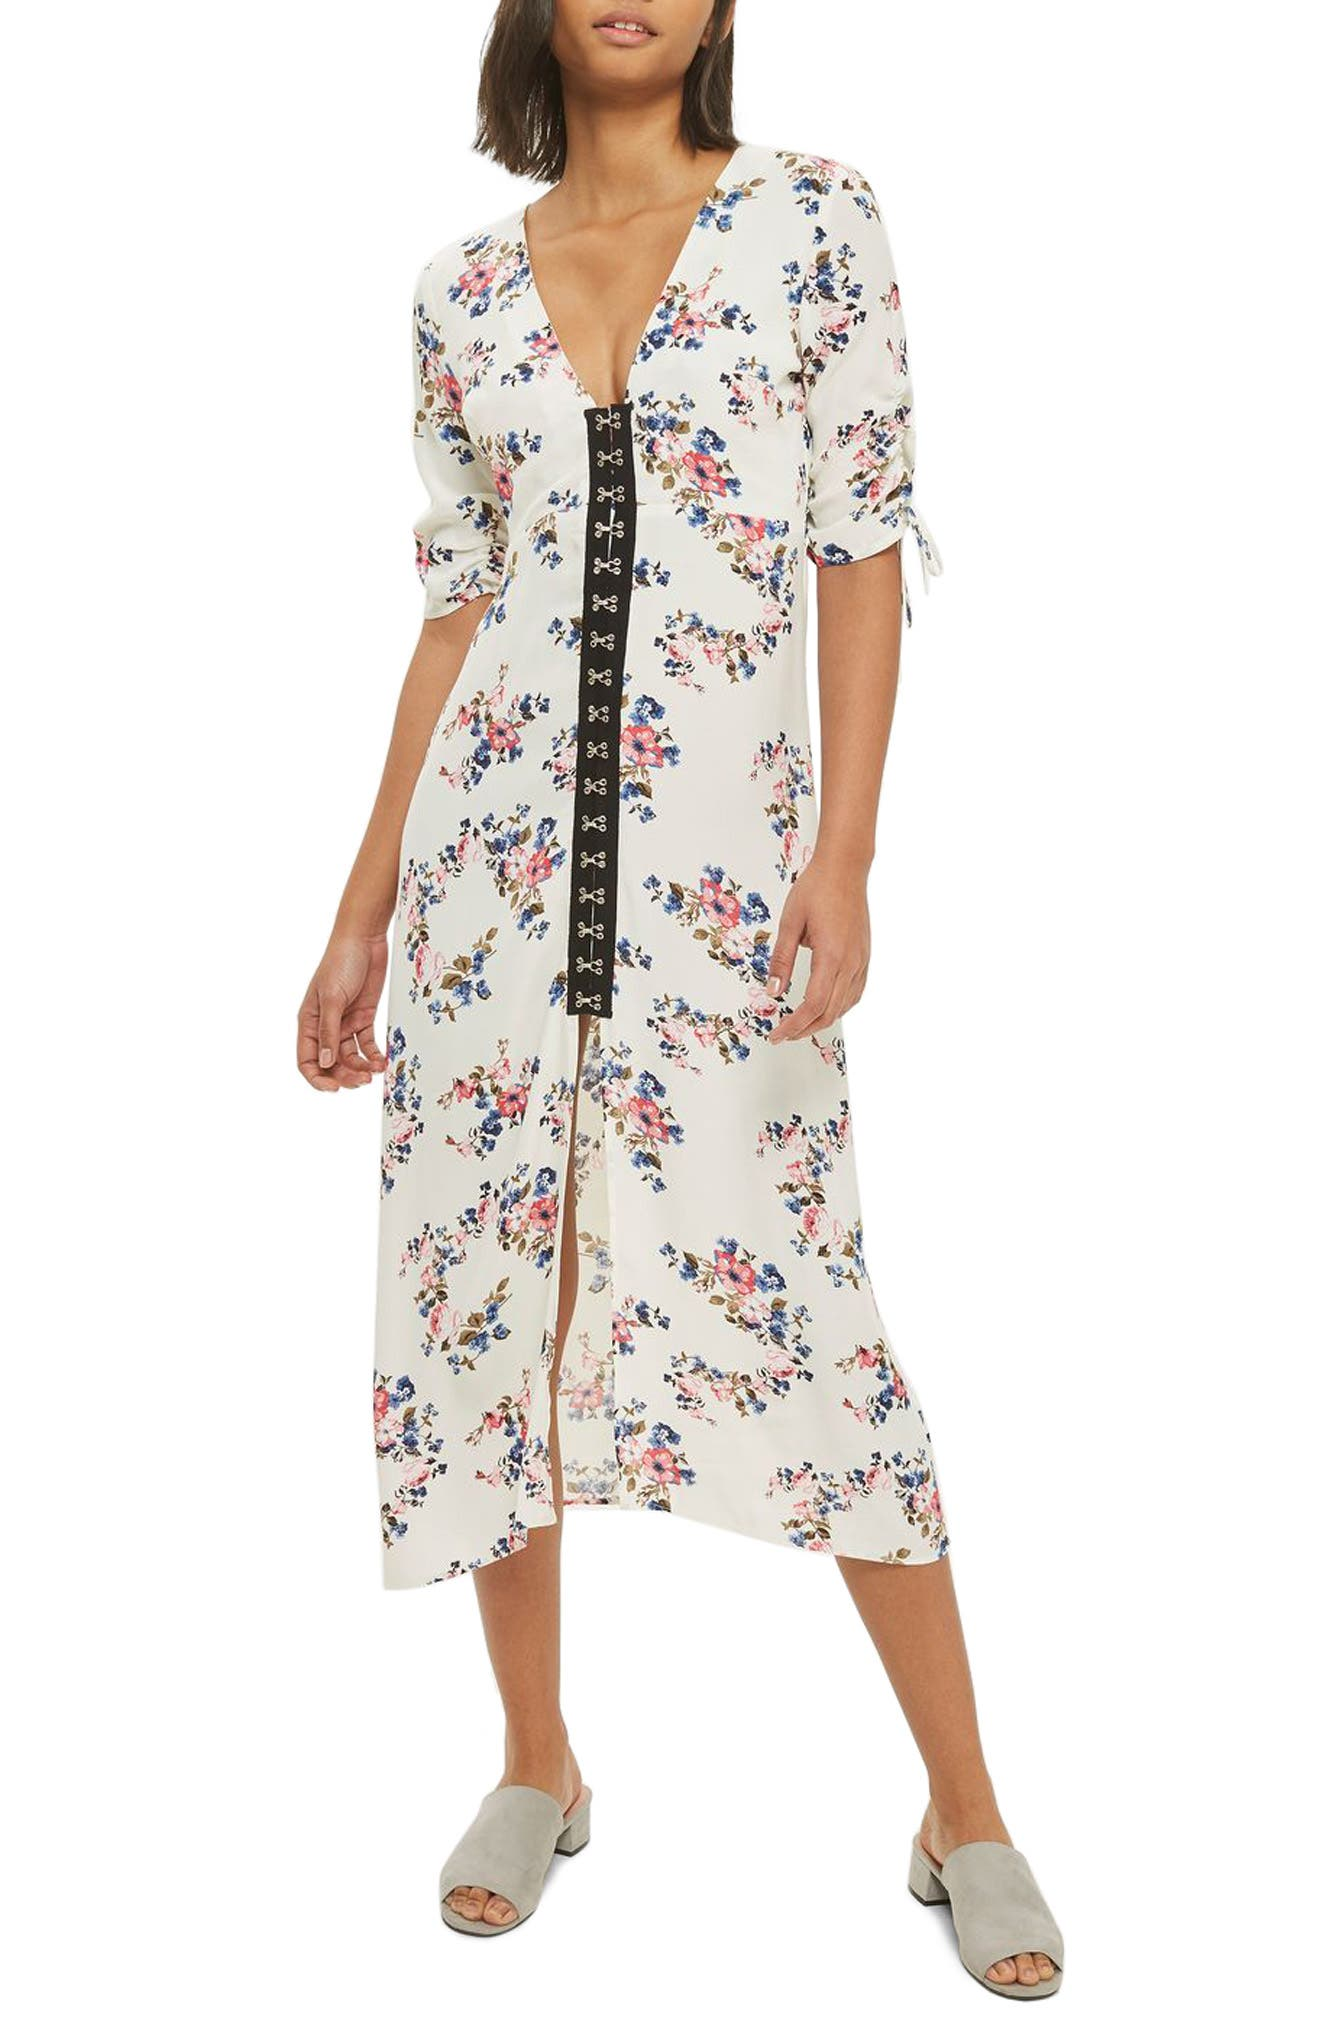 Topshop Hook Front Floral Midi Dress